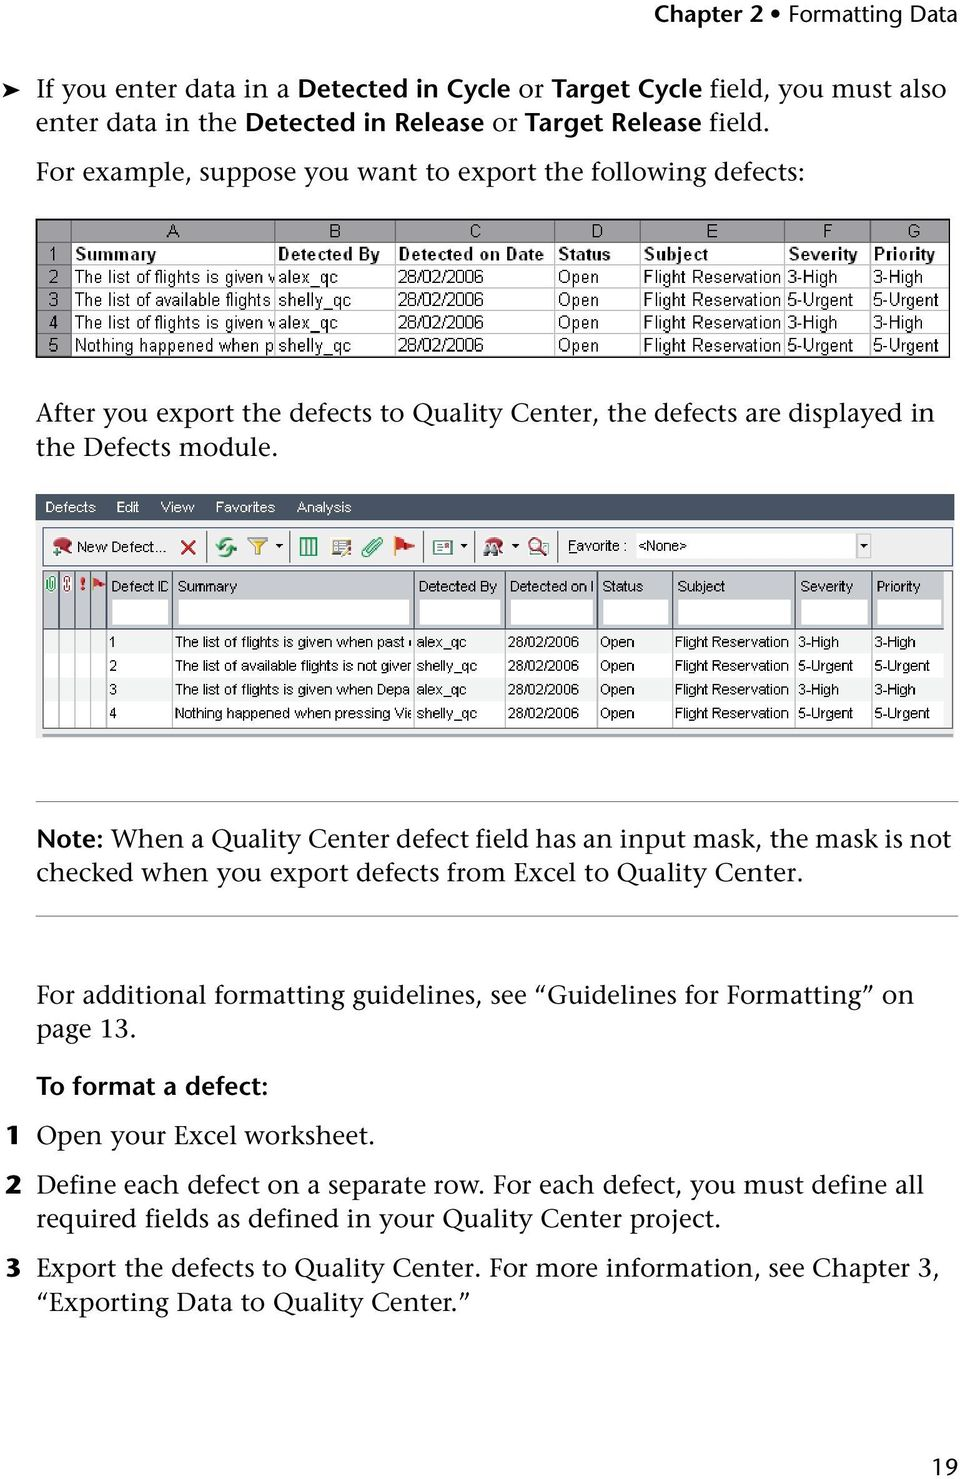 Note: When a Quality Center defect field has an input mask, the mask is not checked when you export defects from Excel to Quality Center.